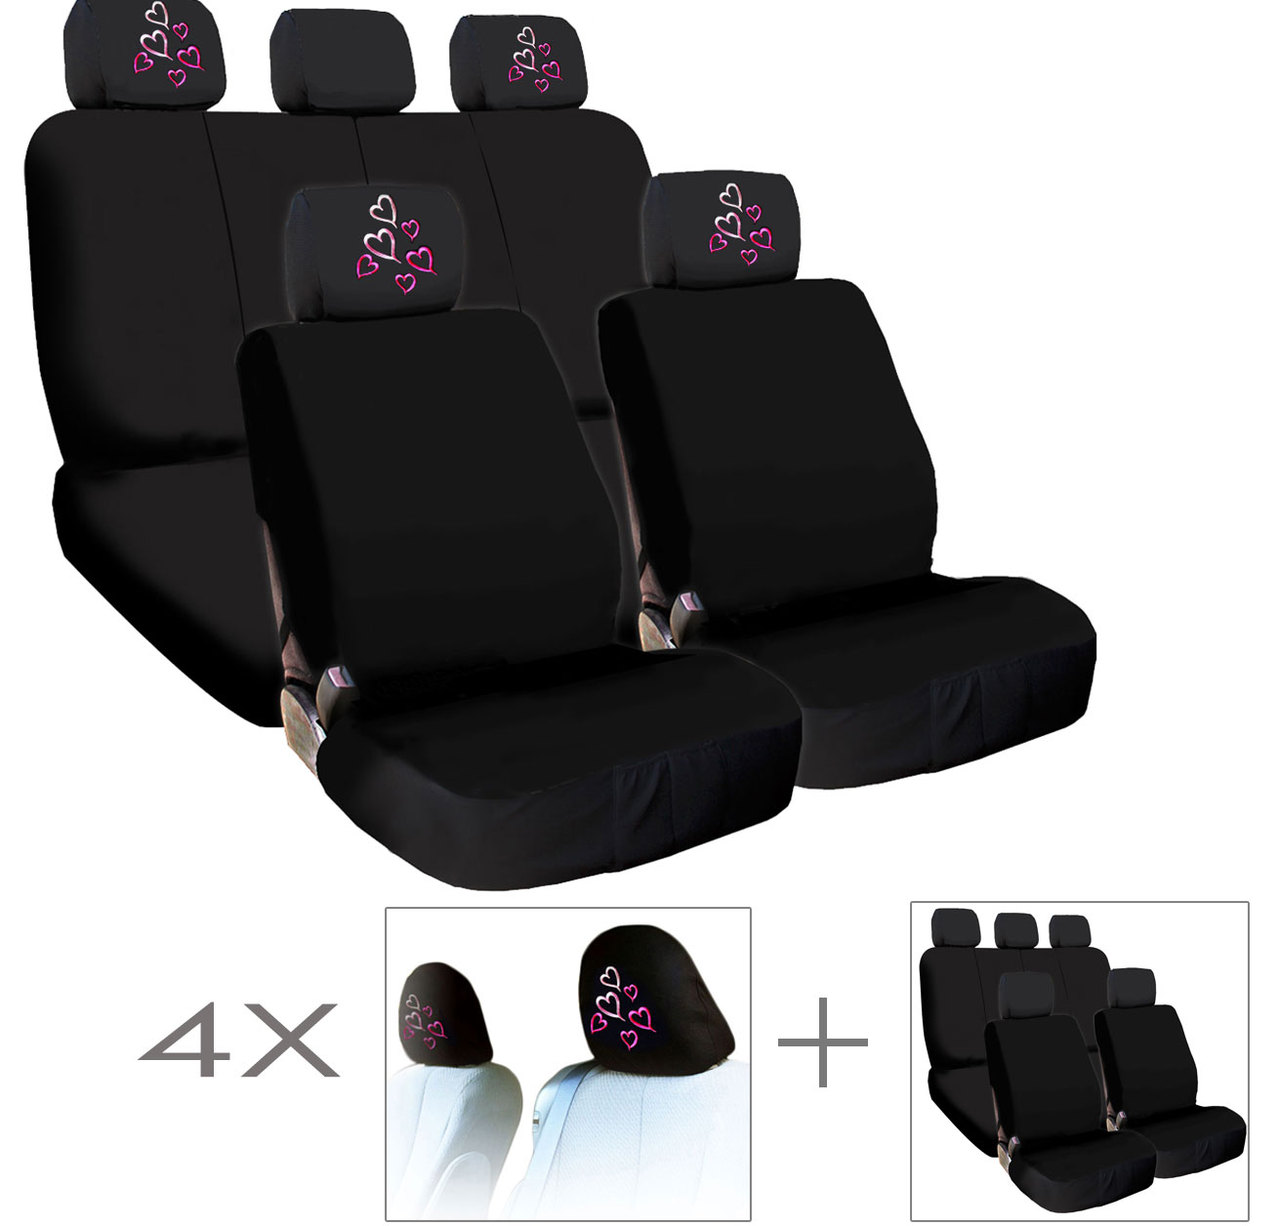 New Bundled 4X Red Pink Hearts Logo Car Seat Headrest Covers And Seat Covers Accessory Universal Fit Shipping Included